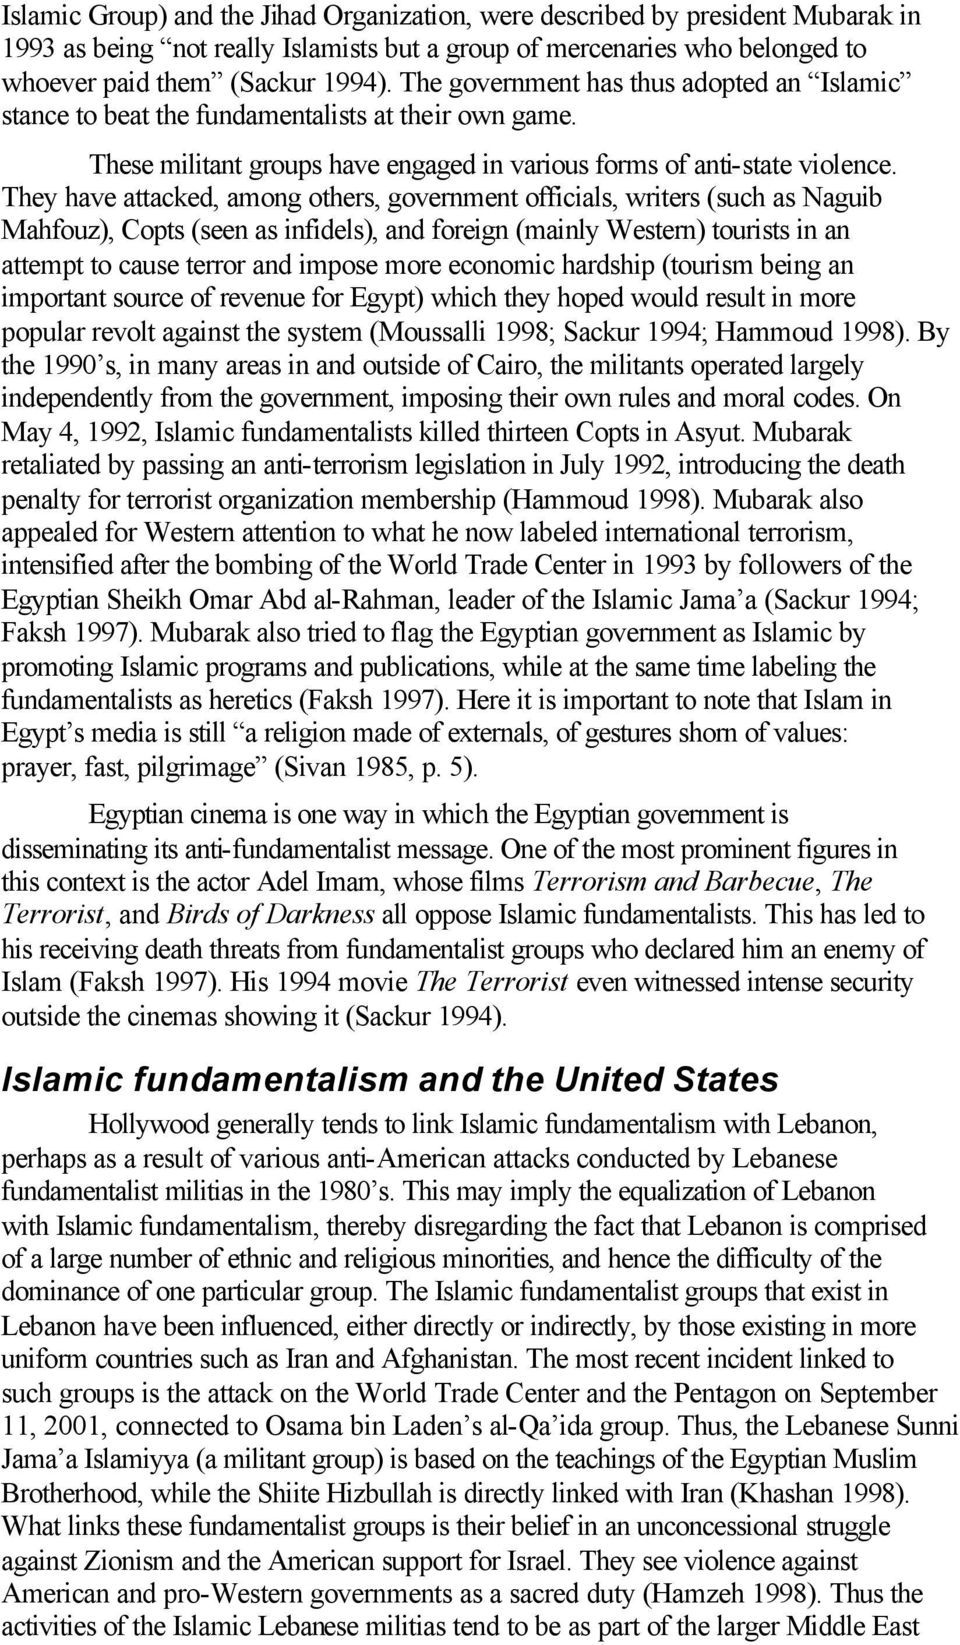 islamic fundamentalism essay There are other religious traditions in which religion and politics are differently   islamic fundamentalism has given an aim and a form to the.